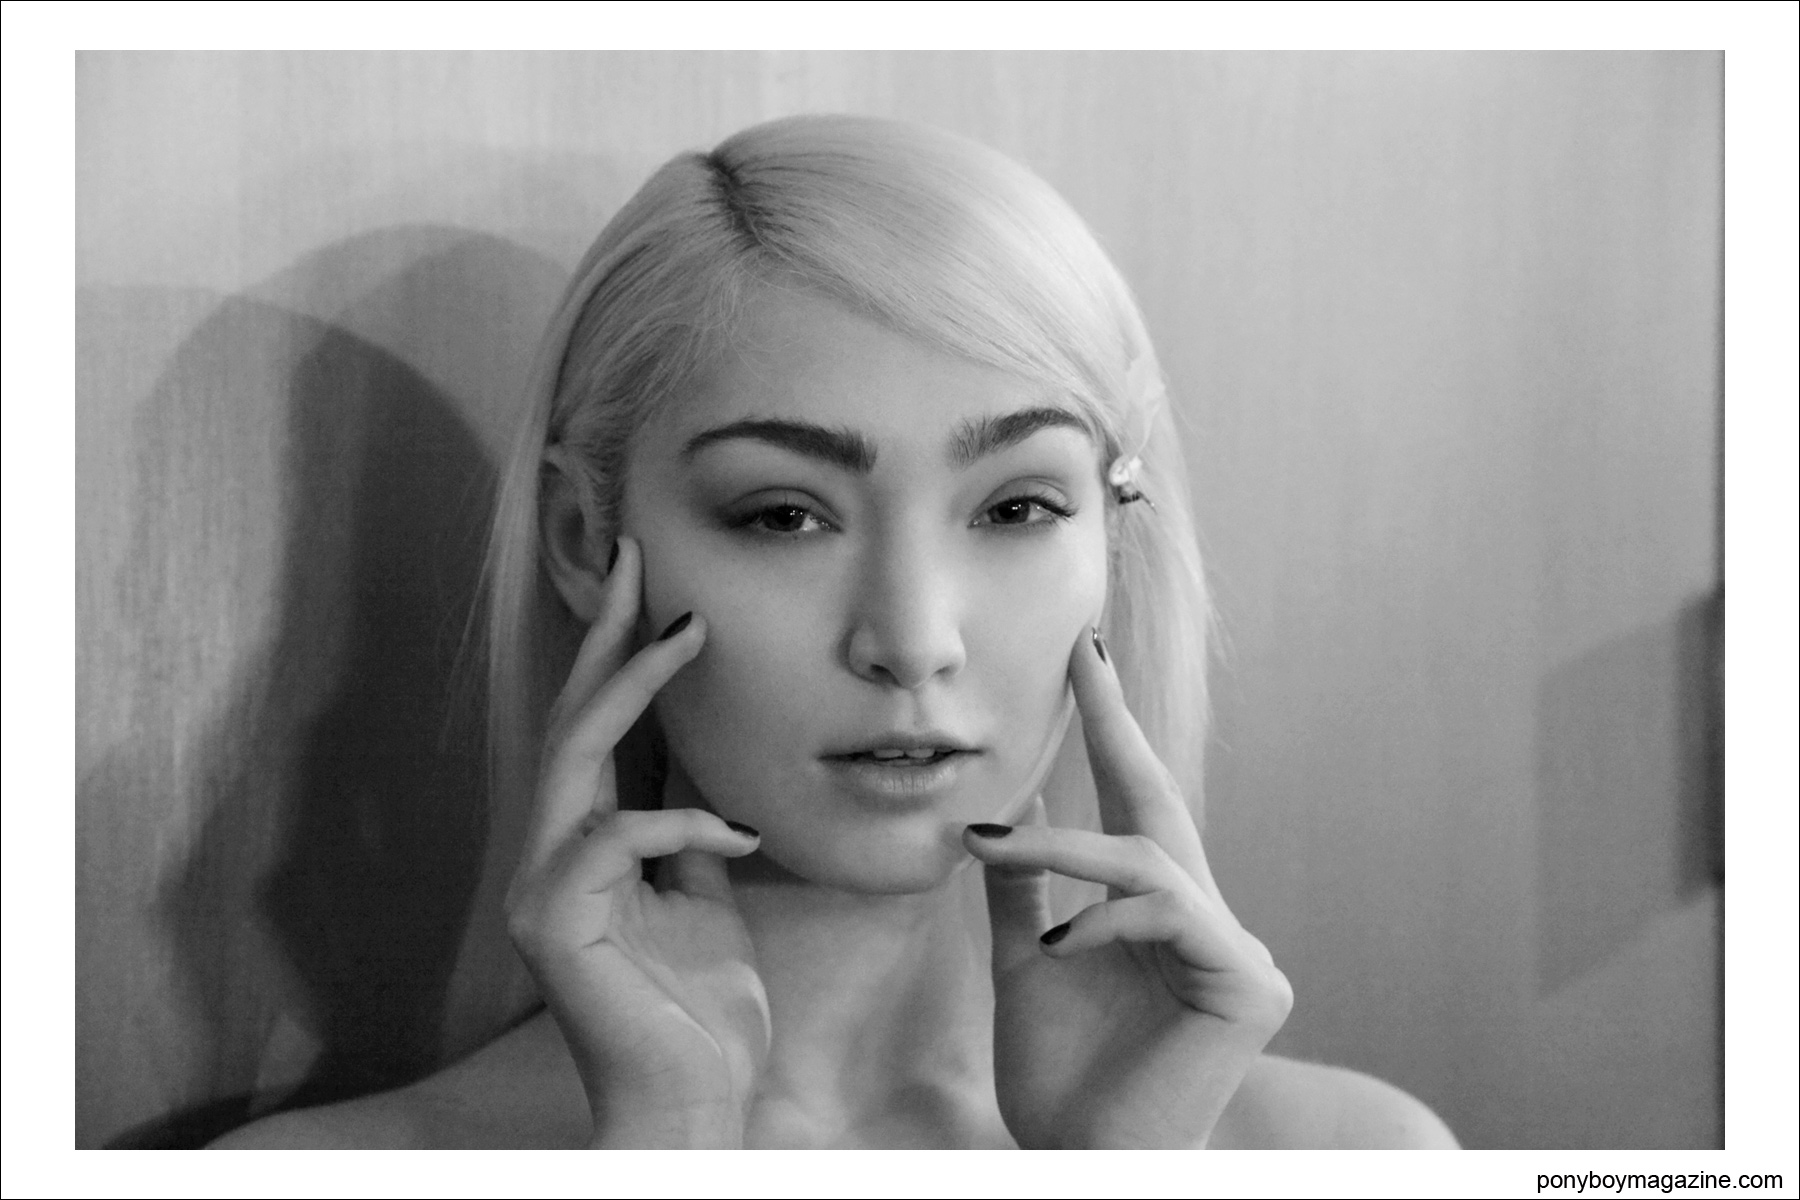 A blonde Asian beauty poses for photographer Alexander Thompson, backstage at the Timo Weiland A/W 2014 Collection at Milk Studios in New York city, for Ponyboy Magazine.